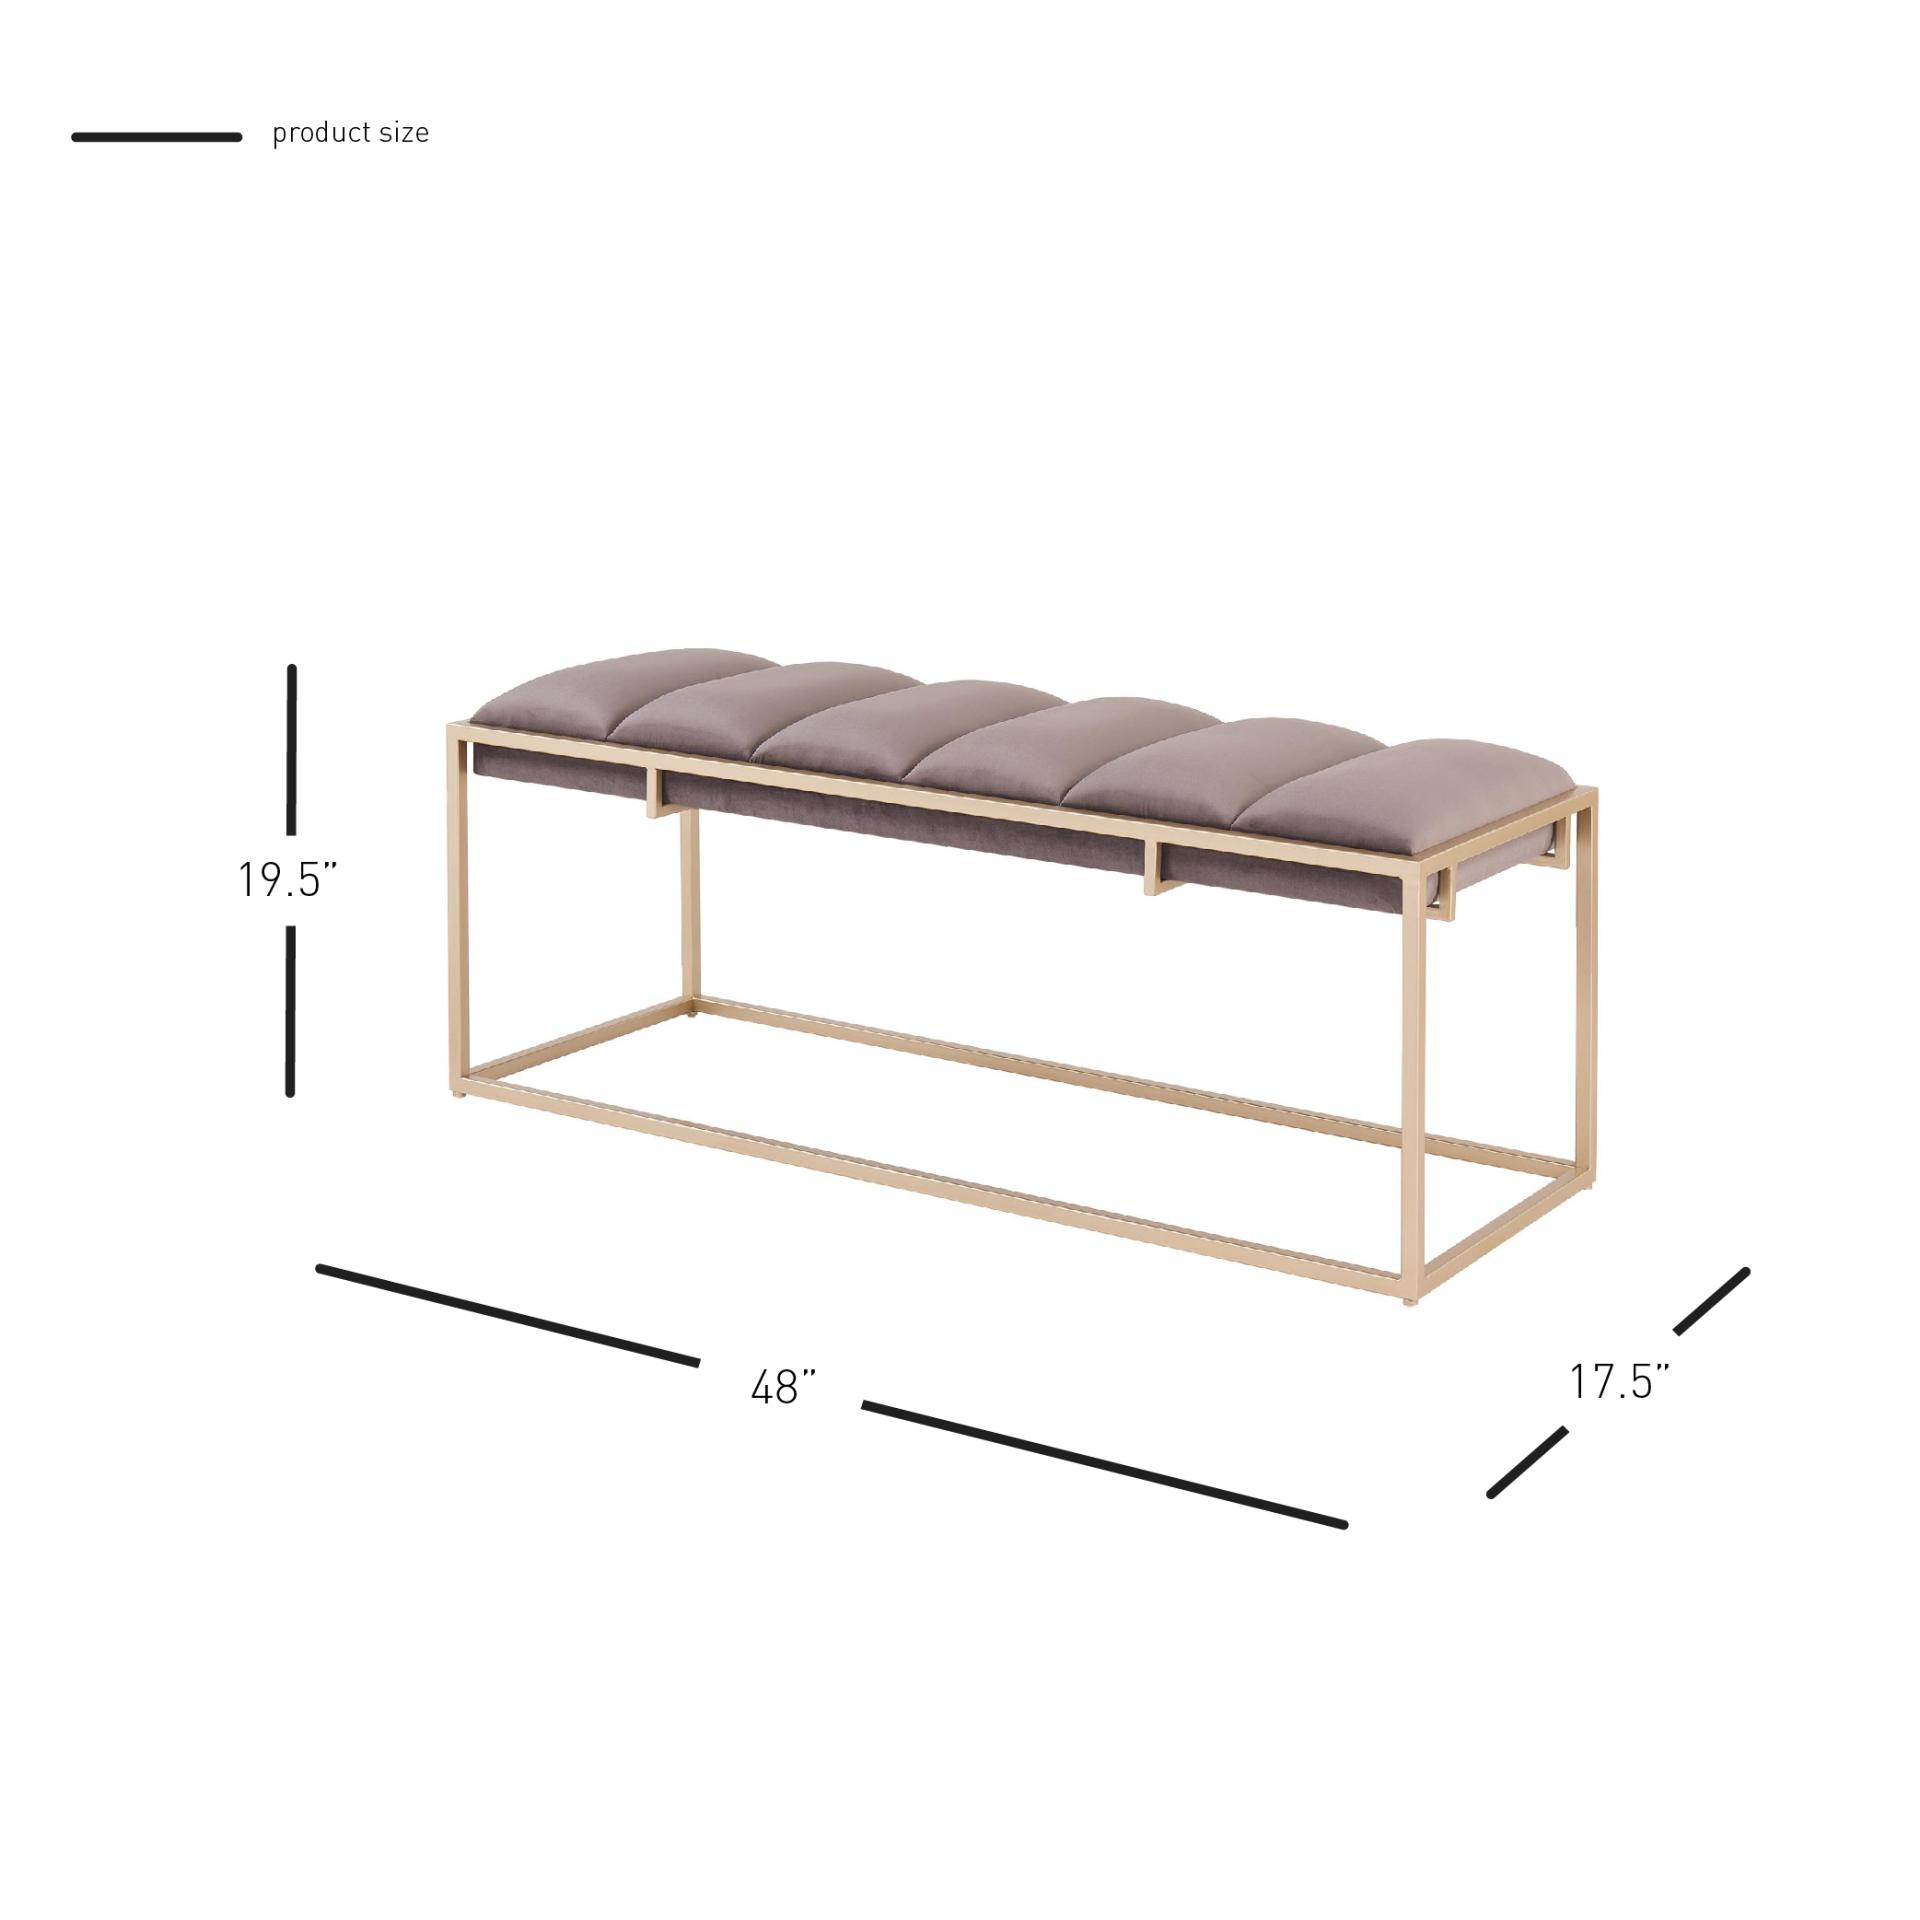 Picture of: 1600033 313 Npd Home Furniture Wholesale Lifestyle Furnishings